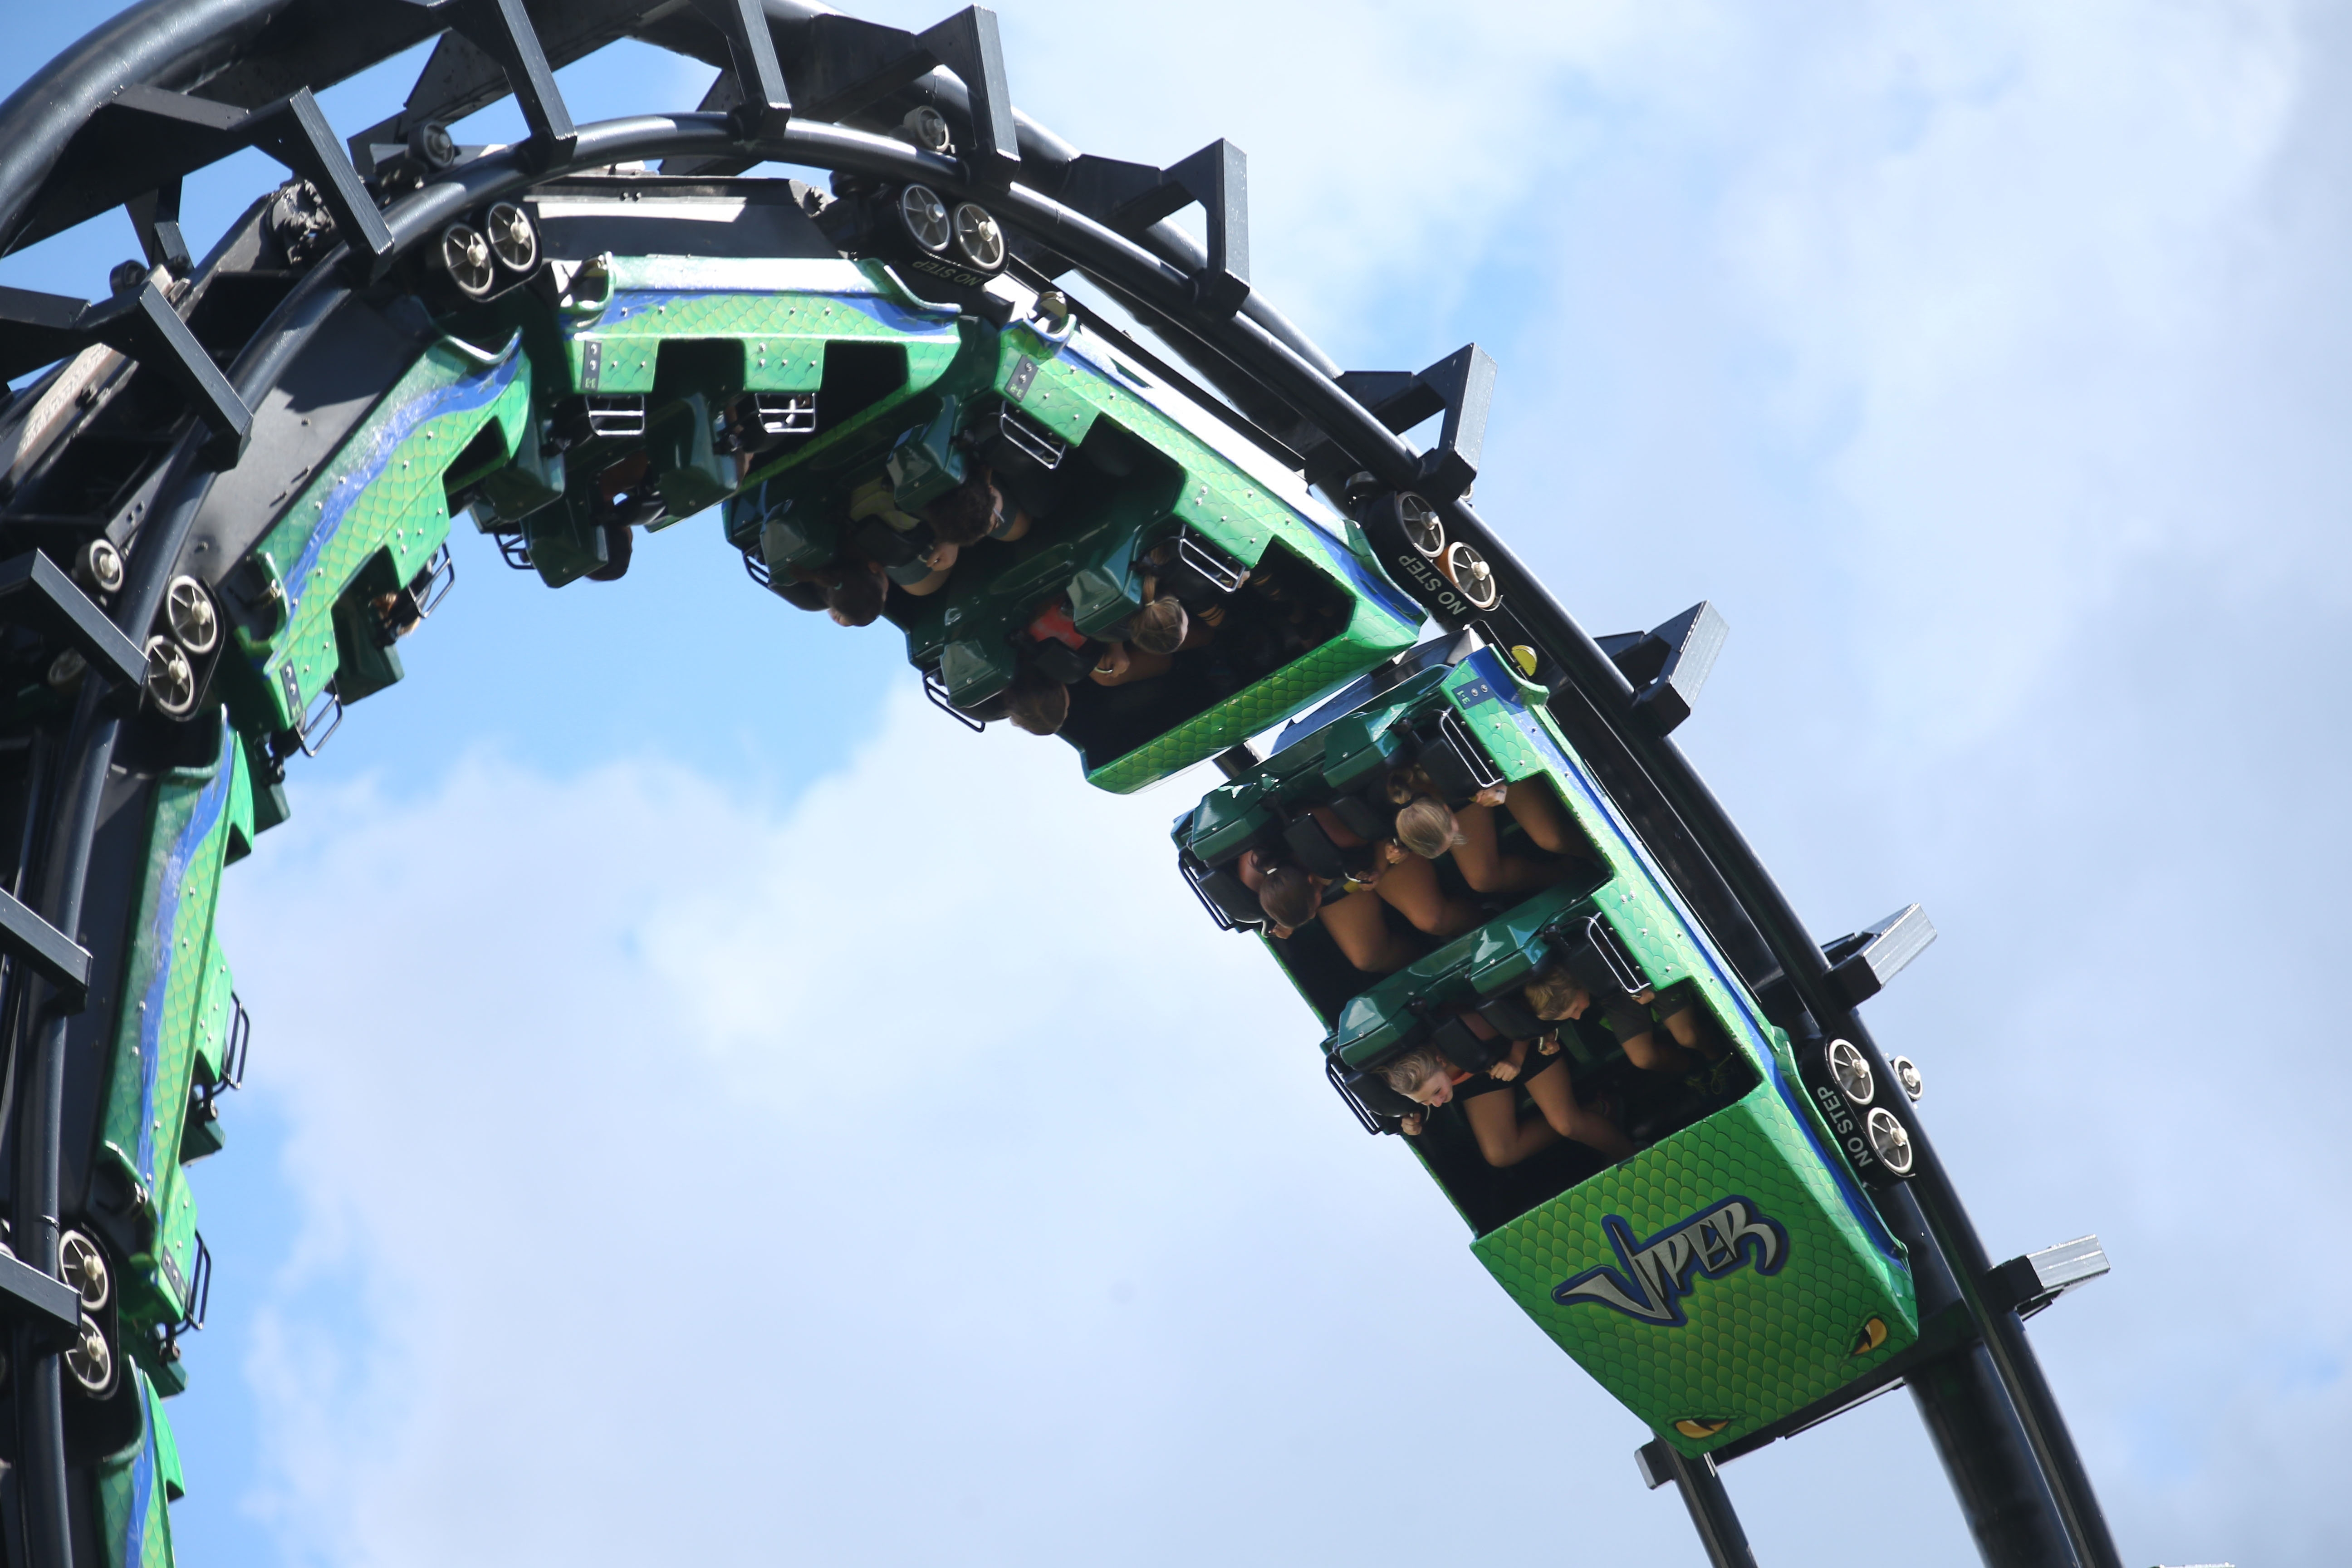 Darien Lake's oldest roller coaster, the Viper, which turned 34 this year is still considered by some to be the best ride in the park. There are several points along the ride where the riders are upside down.